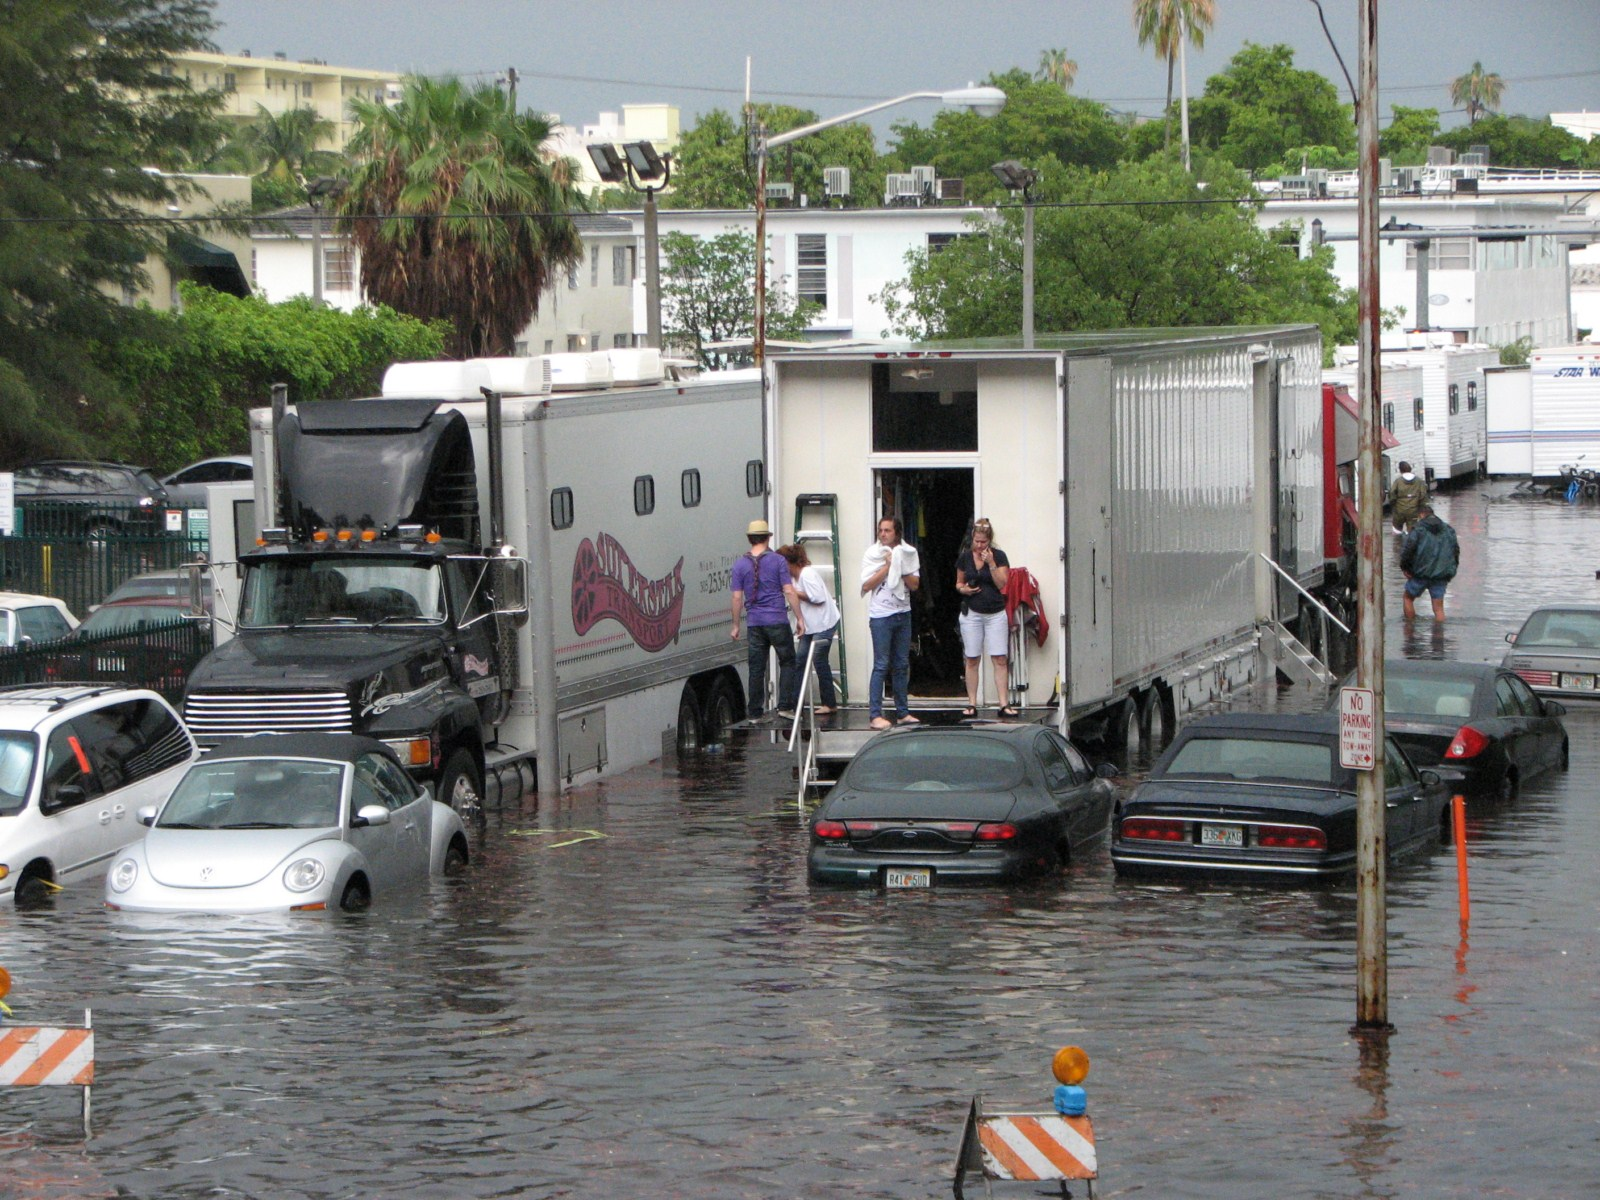 Miami Battles Rising Floodwaters Even As Development Booms